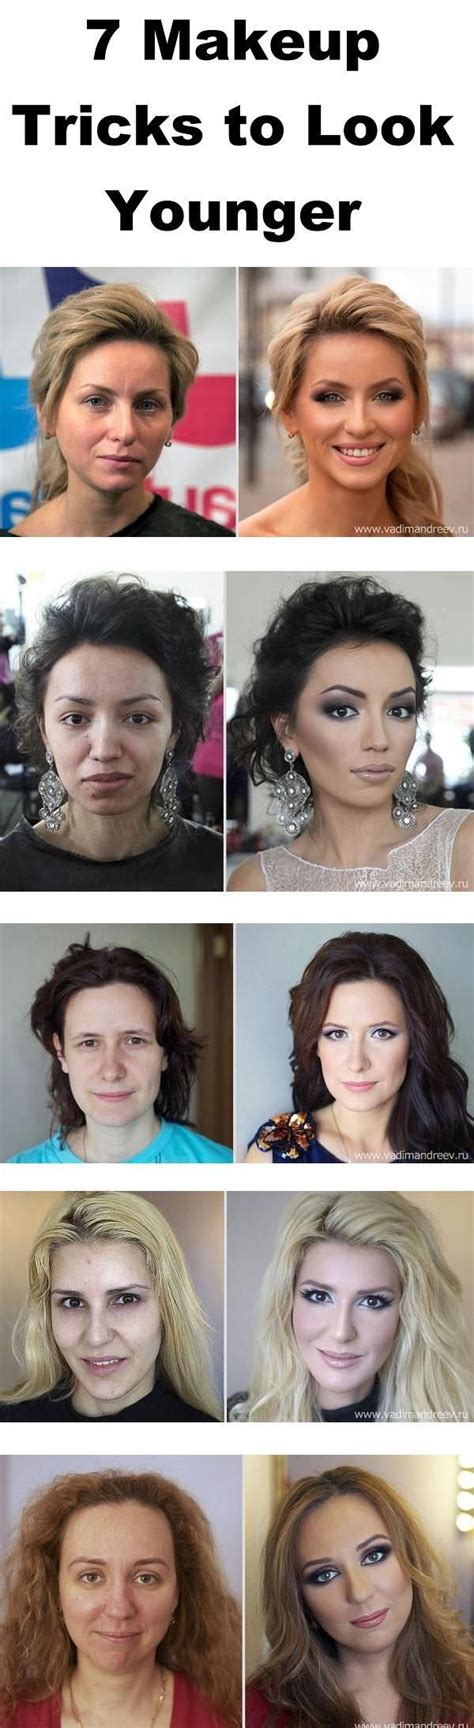 7 Easy Tricks To Look Younger by 7 Makeup Tricks To Look Younger Fashion Daily